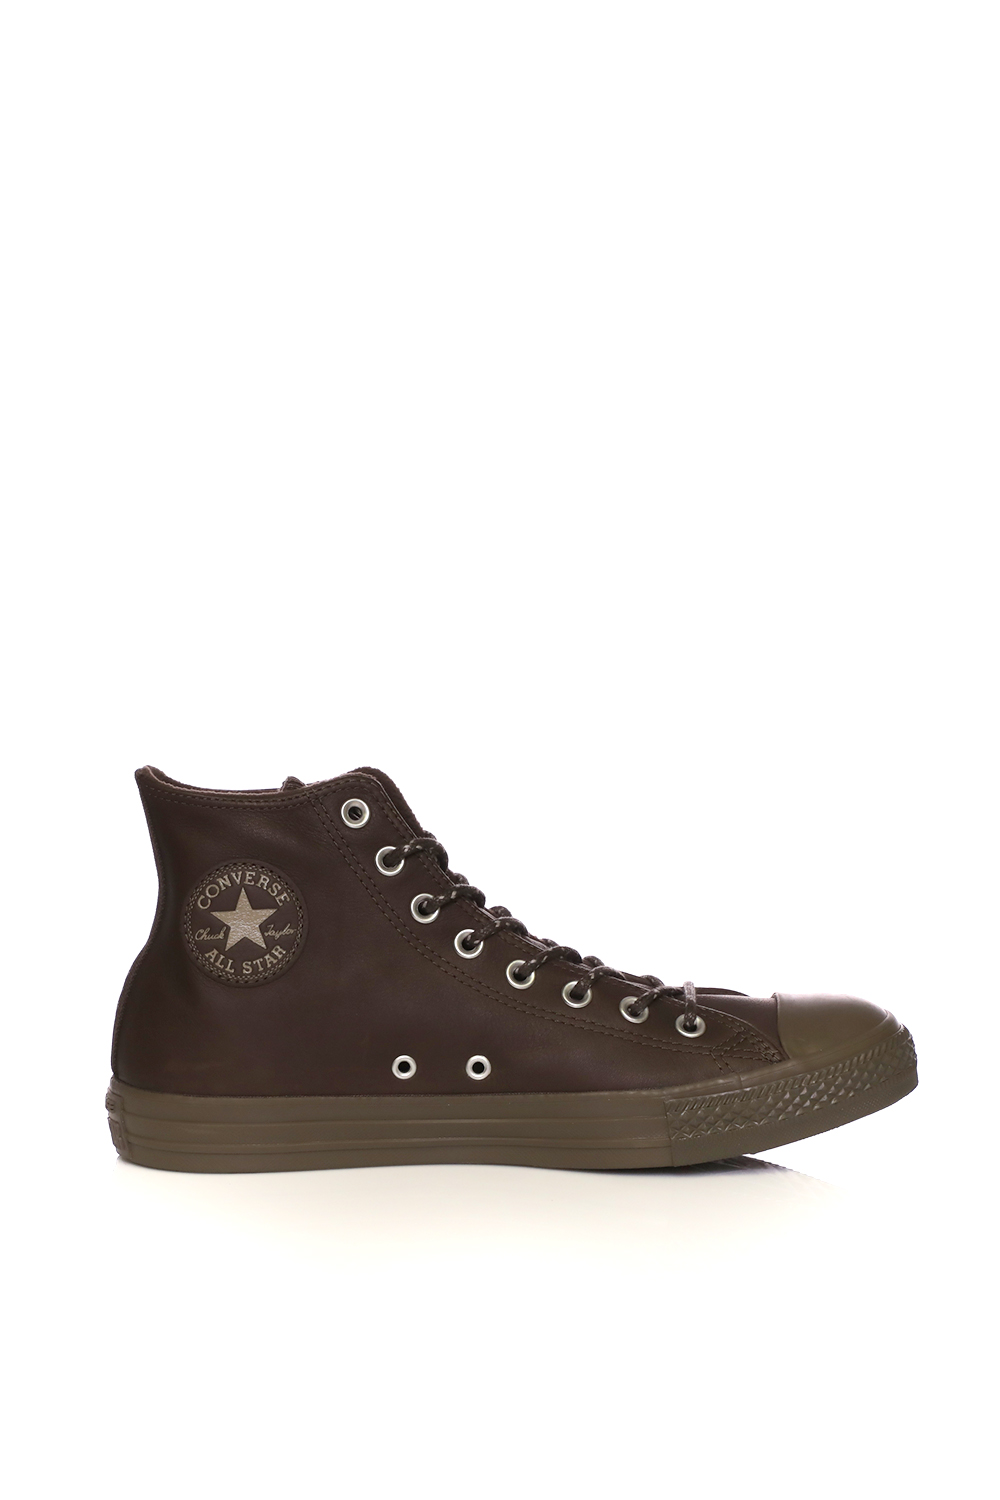 37b2d5921f1 -51% Factory Outlet CONVERSE – Unisex μποτάκια CONVERSE Chuck Taylor All  Star Hi καφέ